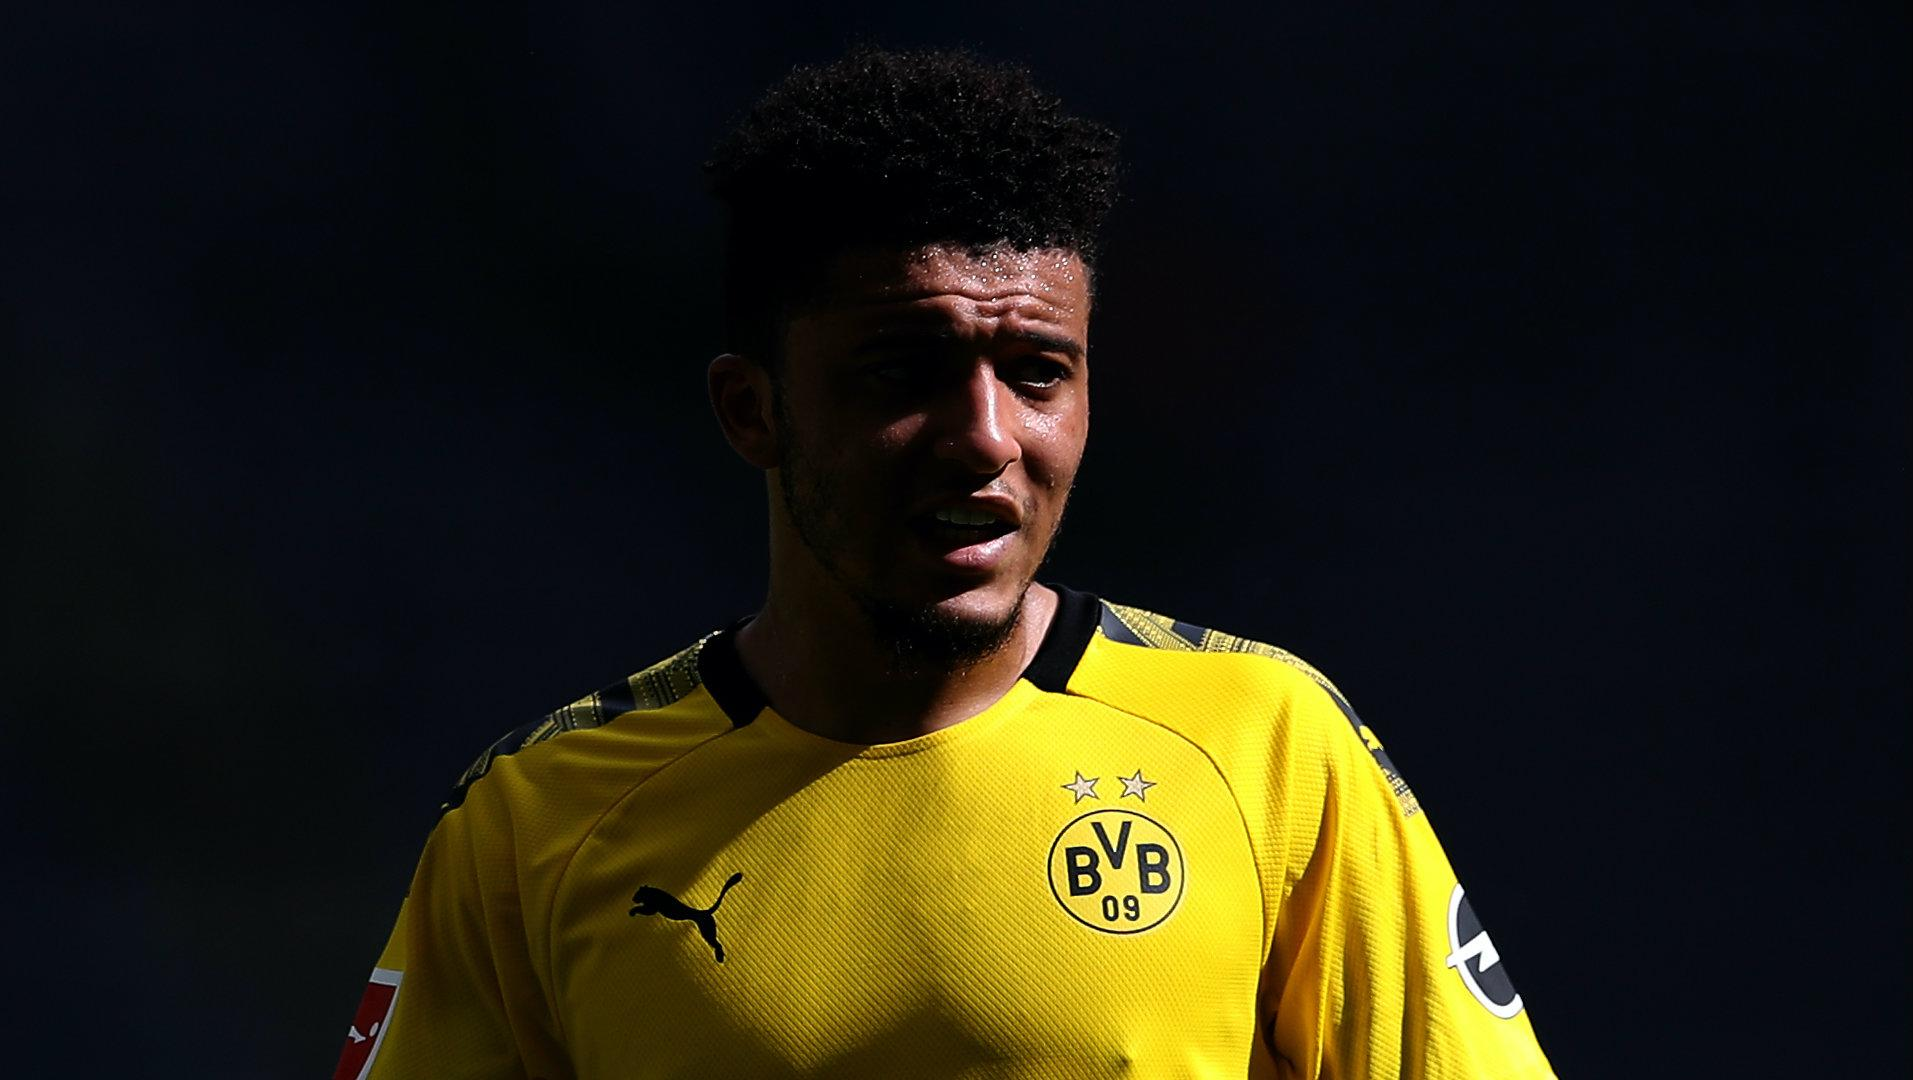 Man Utd prepared to walk away from Sancho transfer with clubs apart on valuation